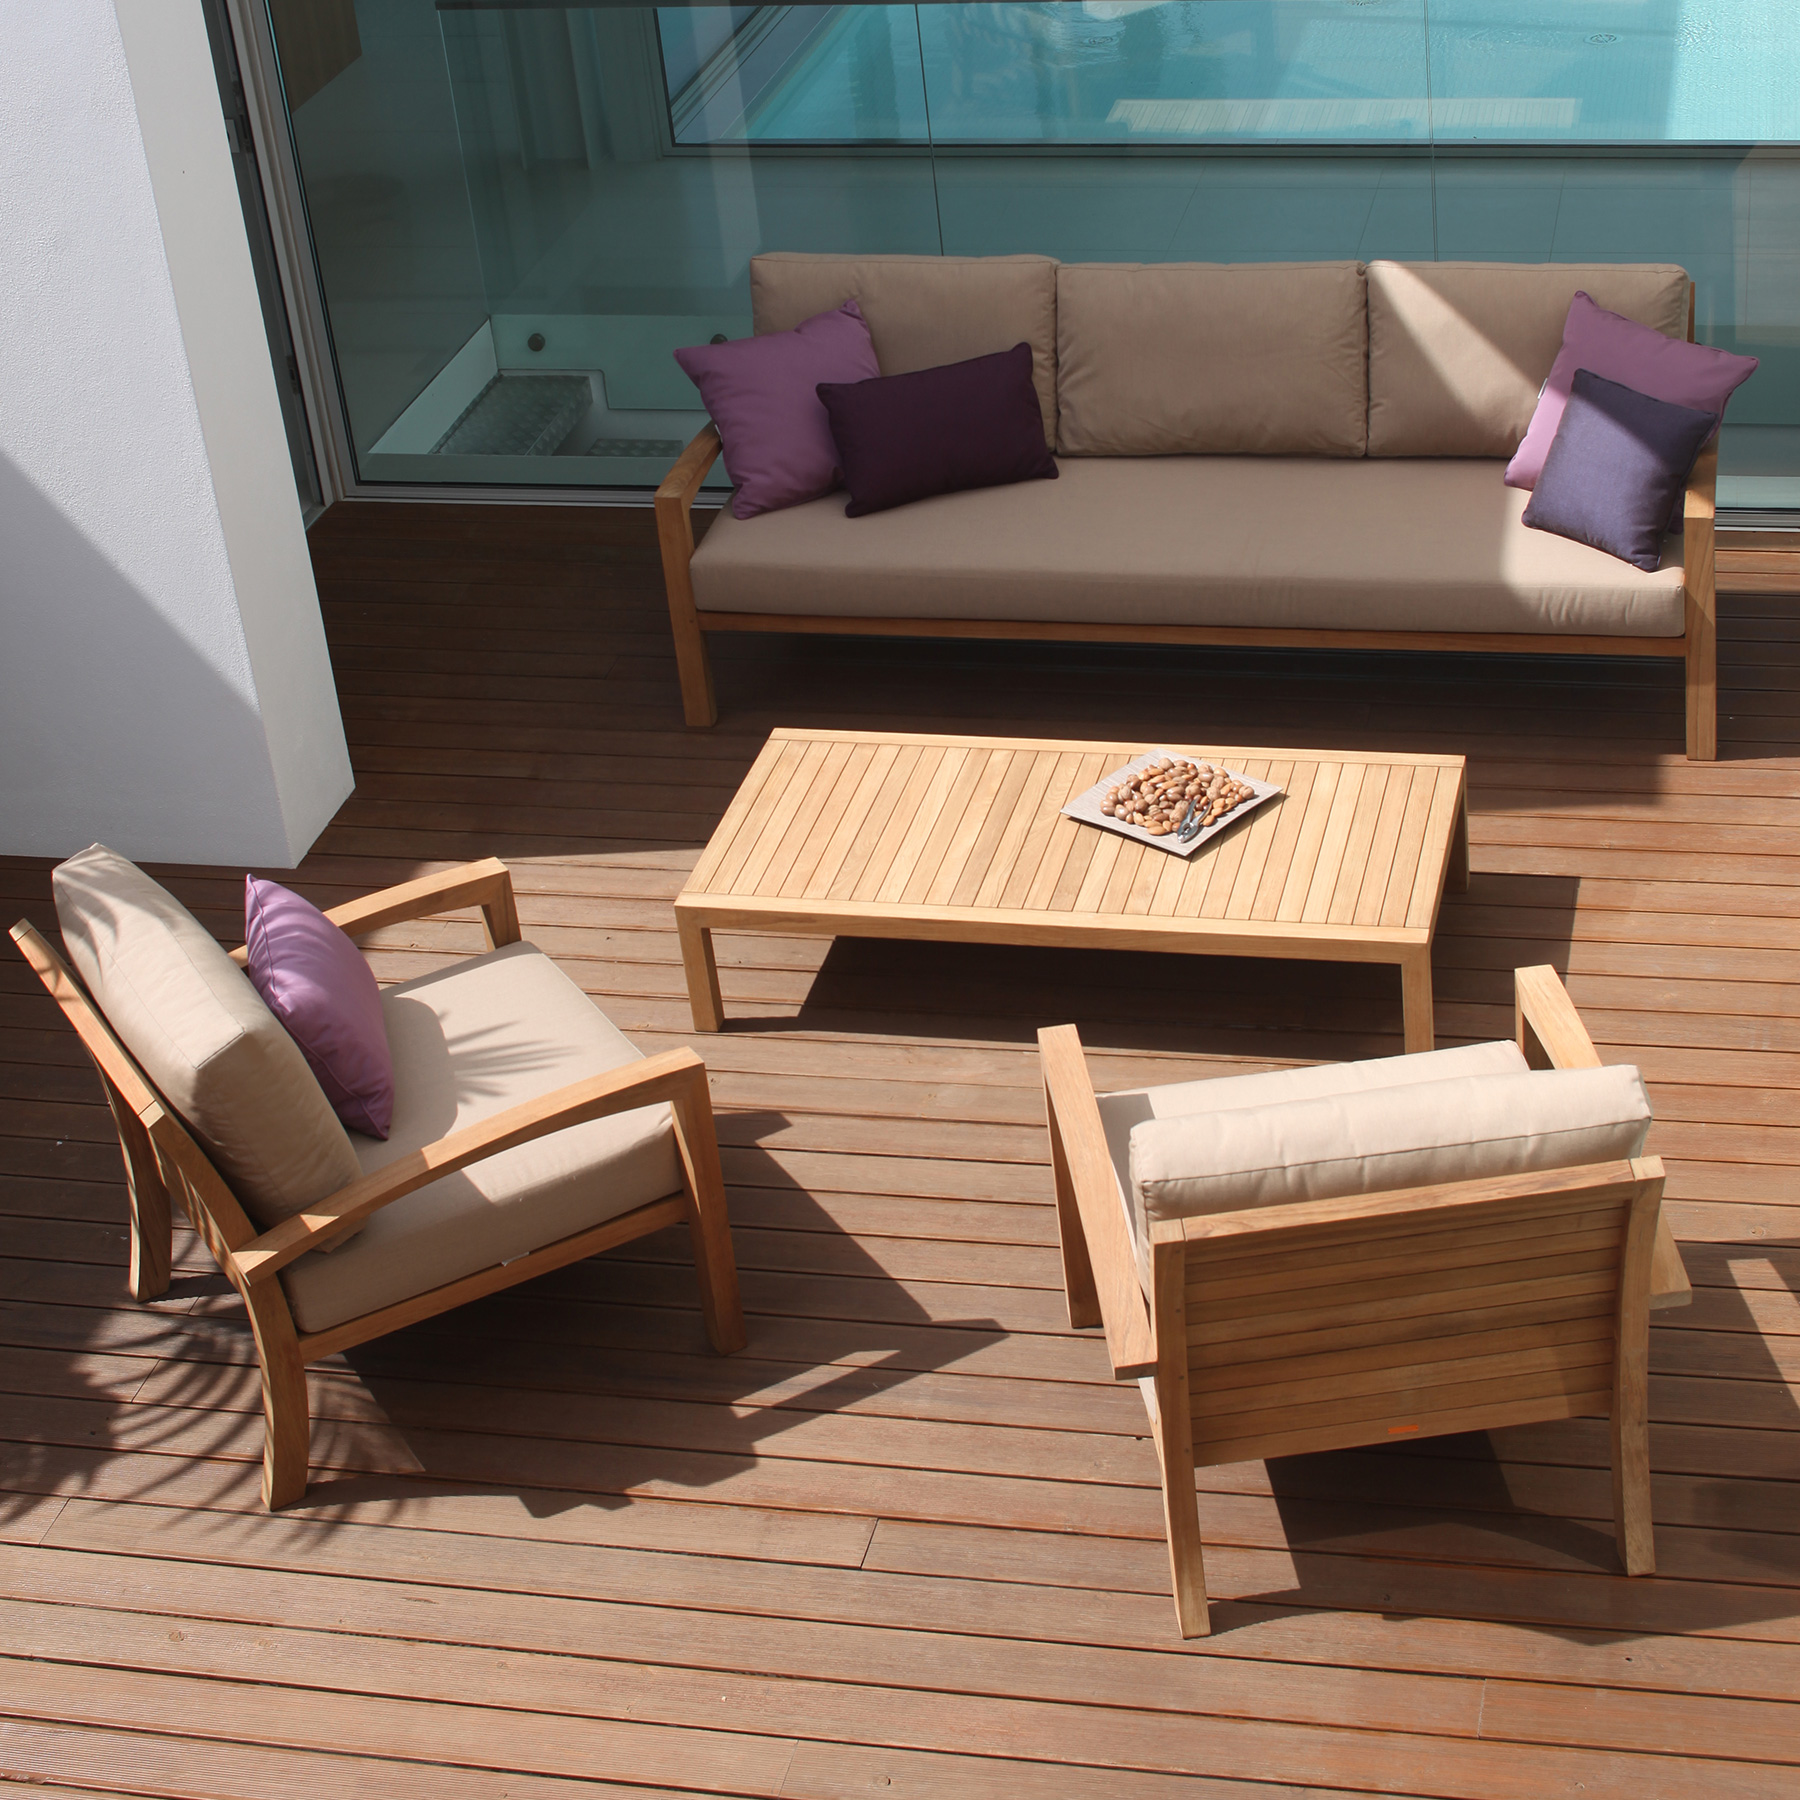 Outdoor Furniture High End Of High End Ixit Lounge Chair Designer Luxury Outdoor